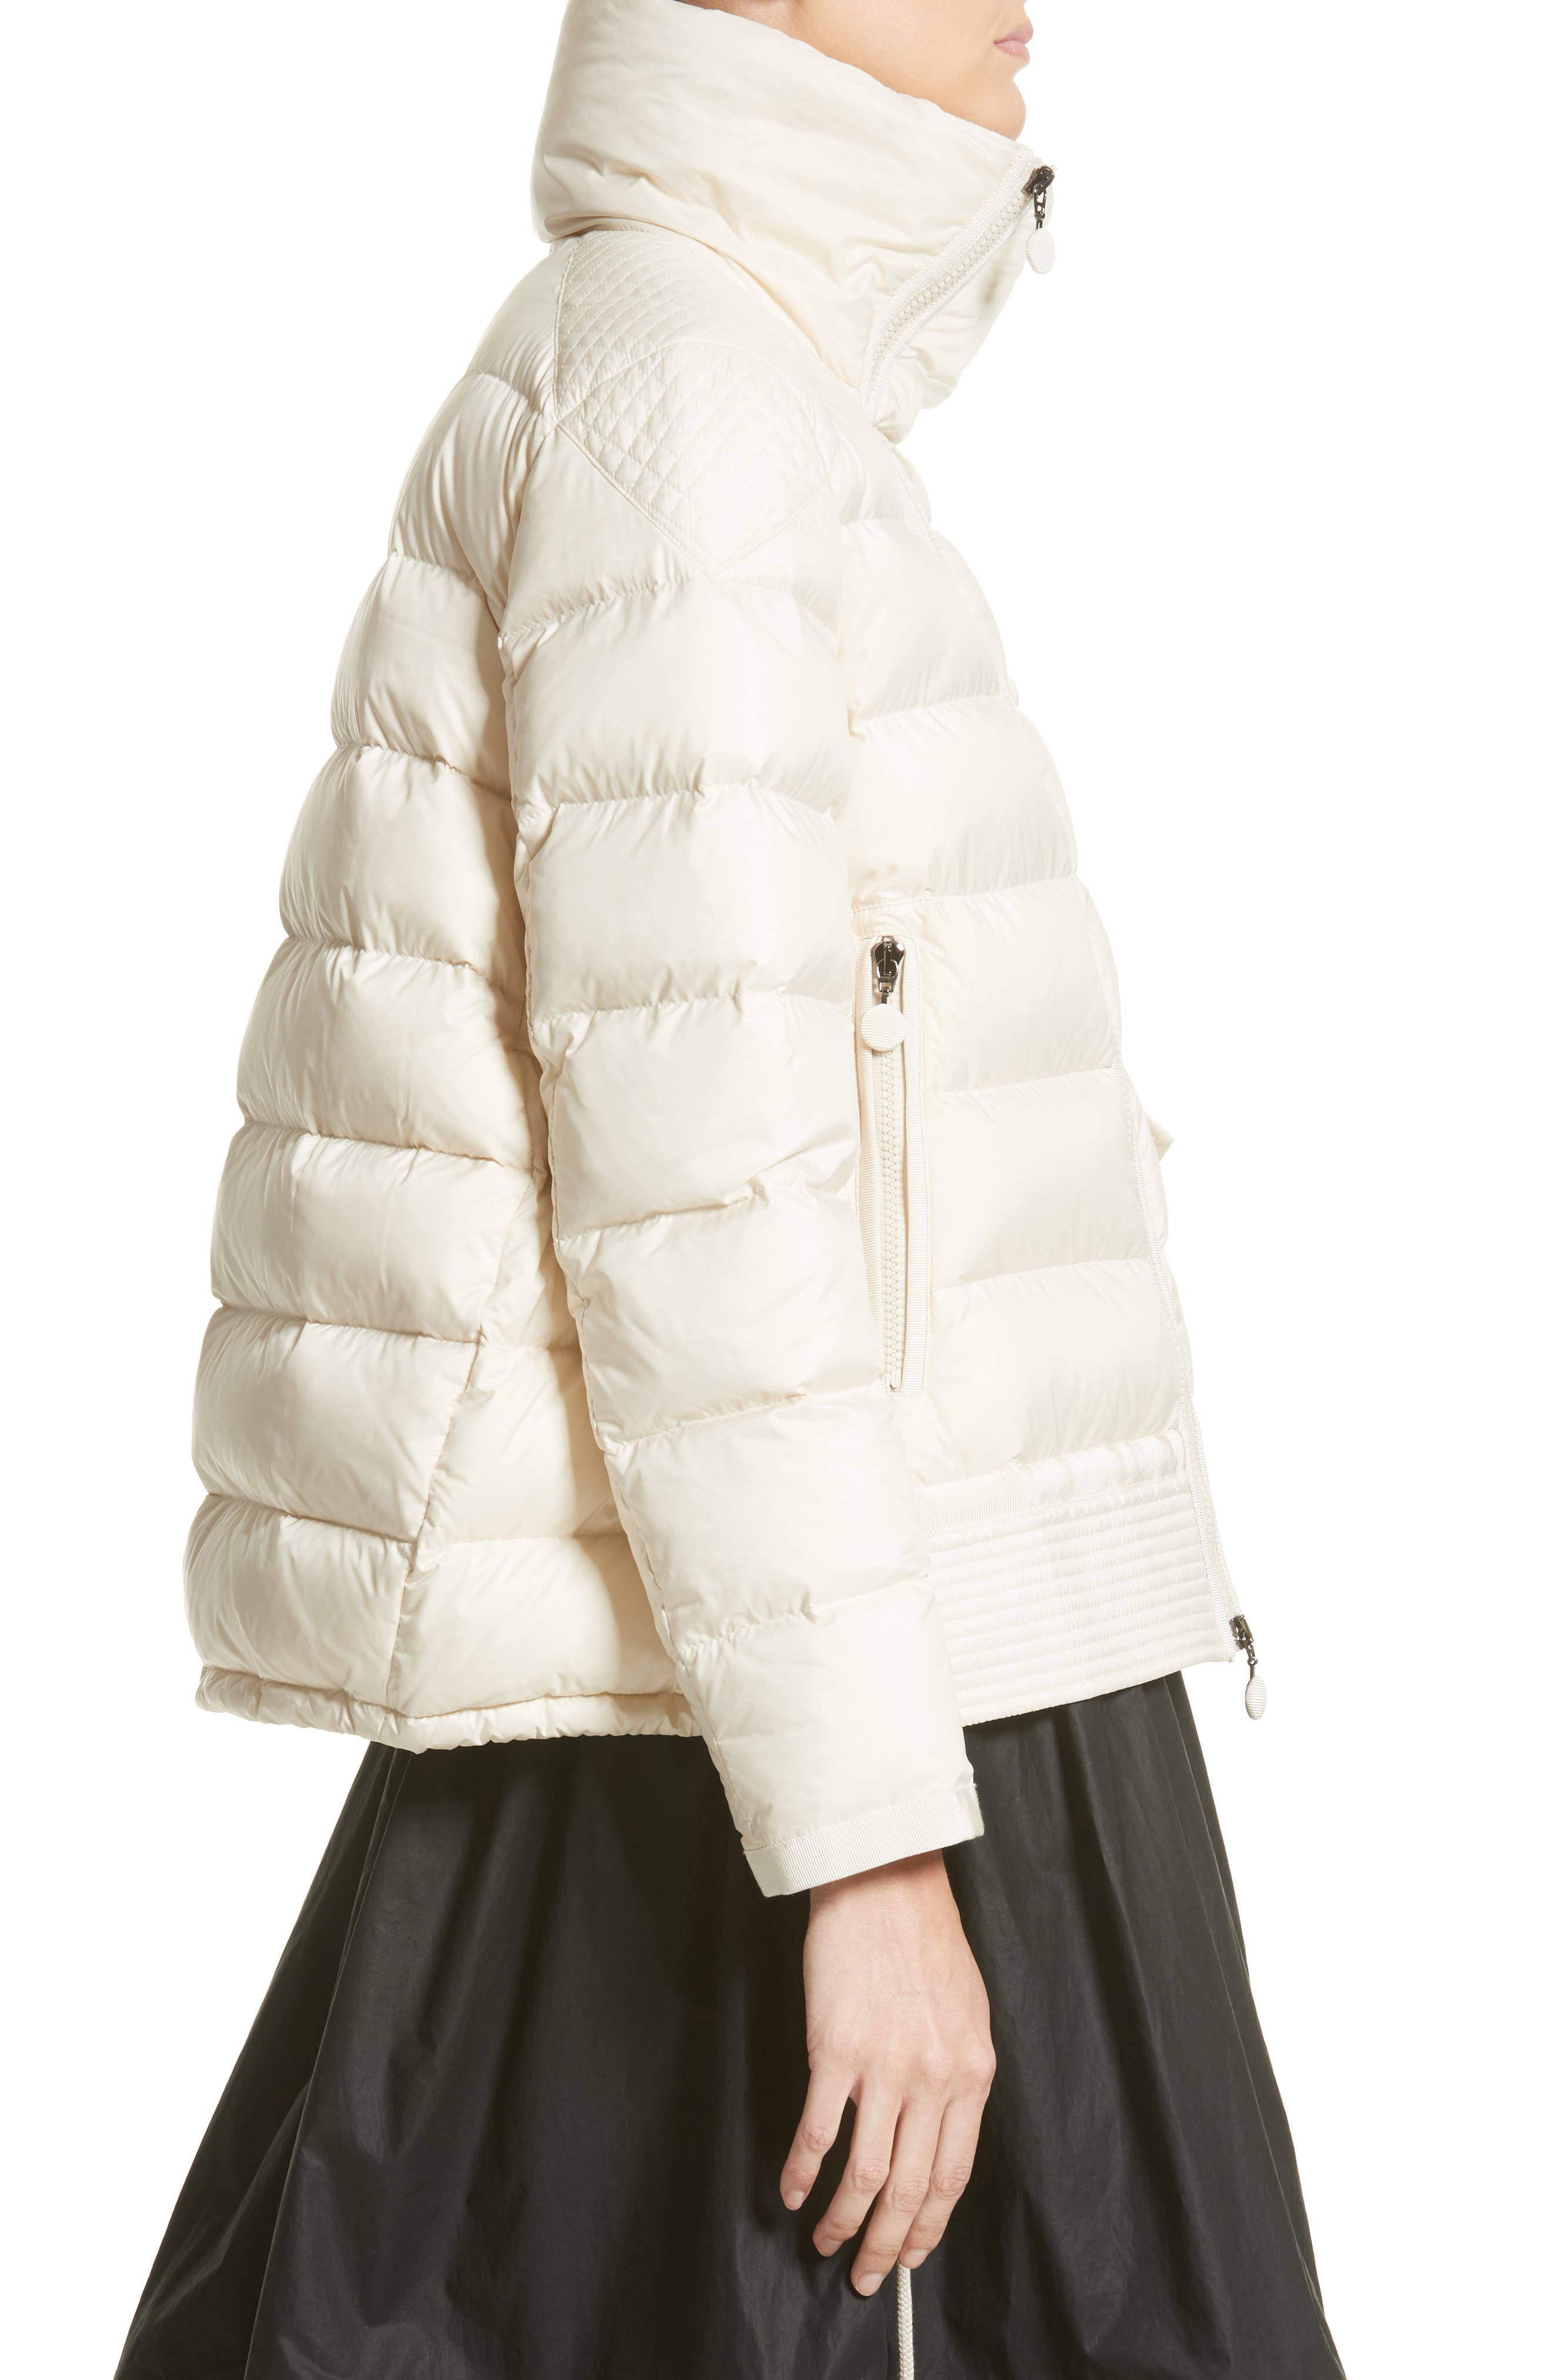 Margaret Down Puffer Jacket,                             Alternate thumbnail 3, color,                             Cream